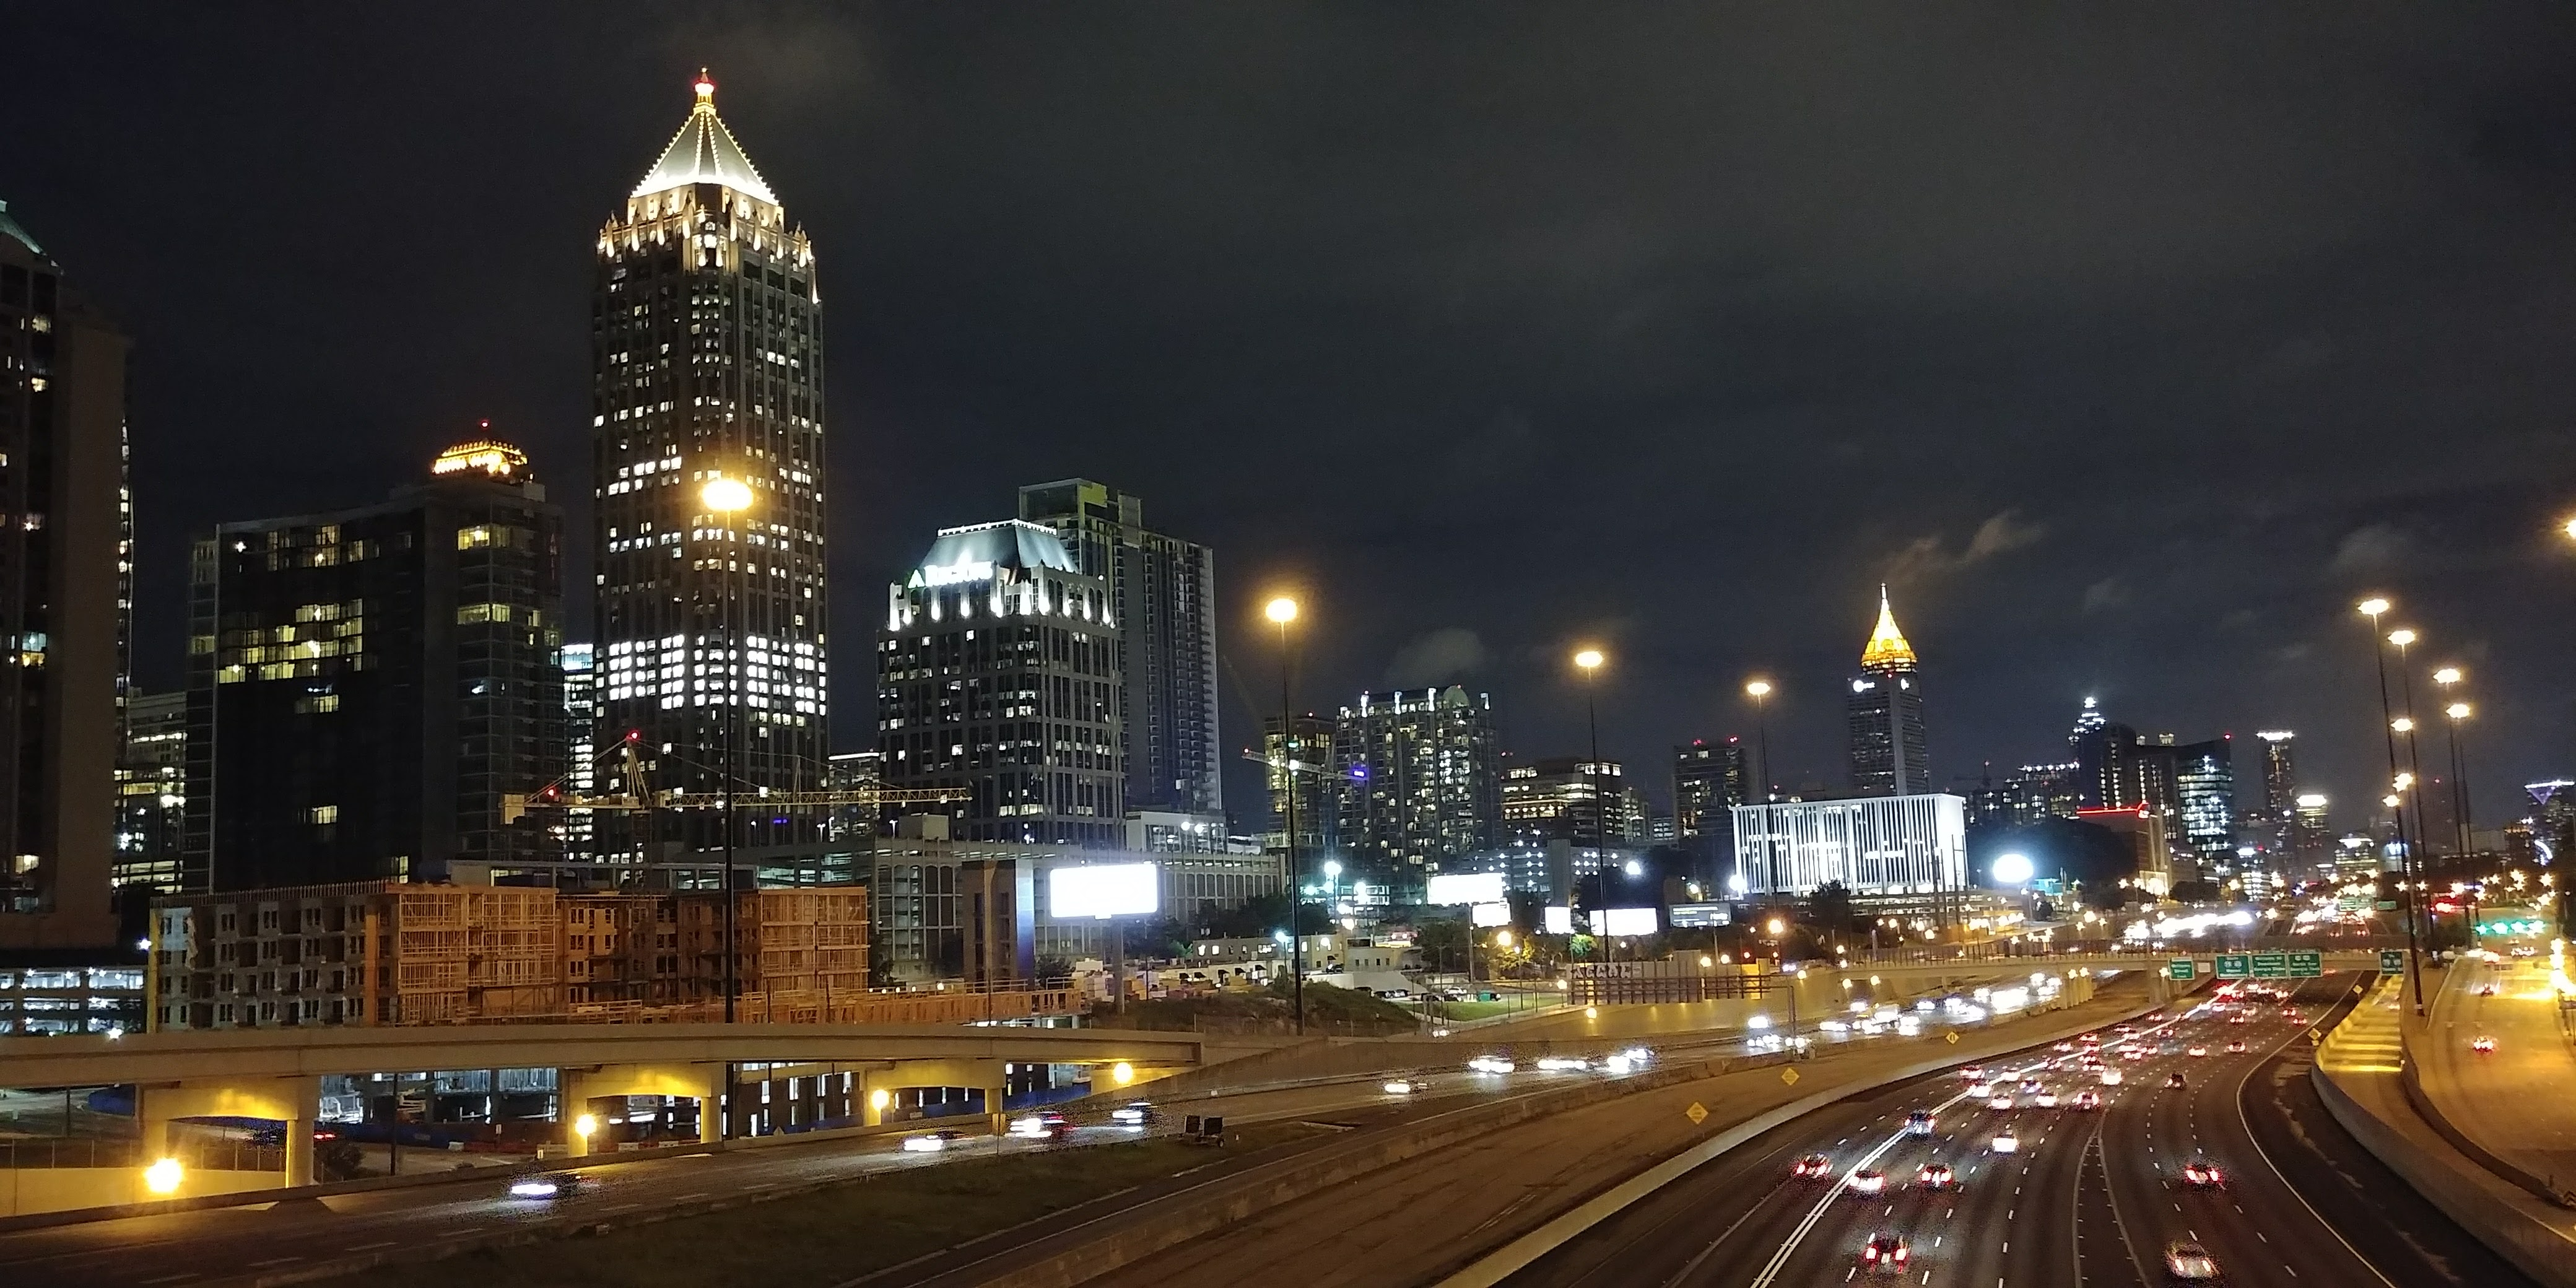 Downtown Atlanta at night, Atlanta, Building, Car, City, HQ Photo